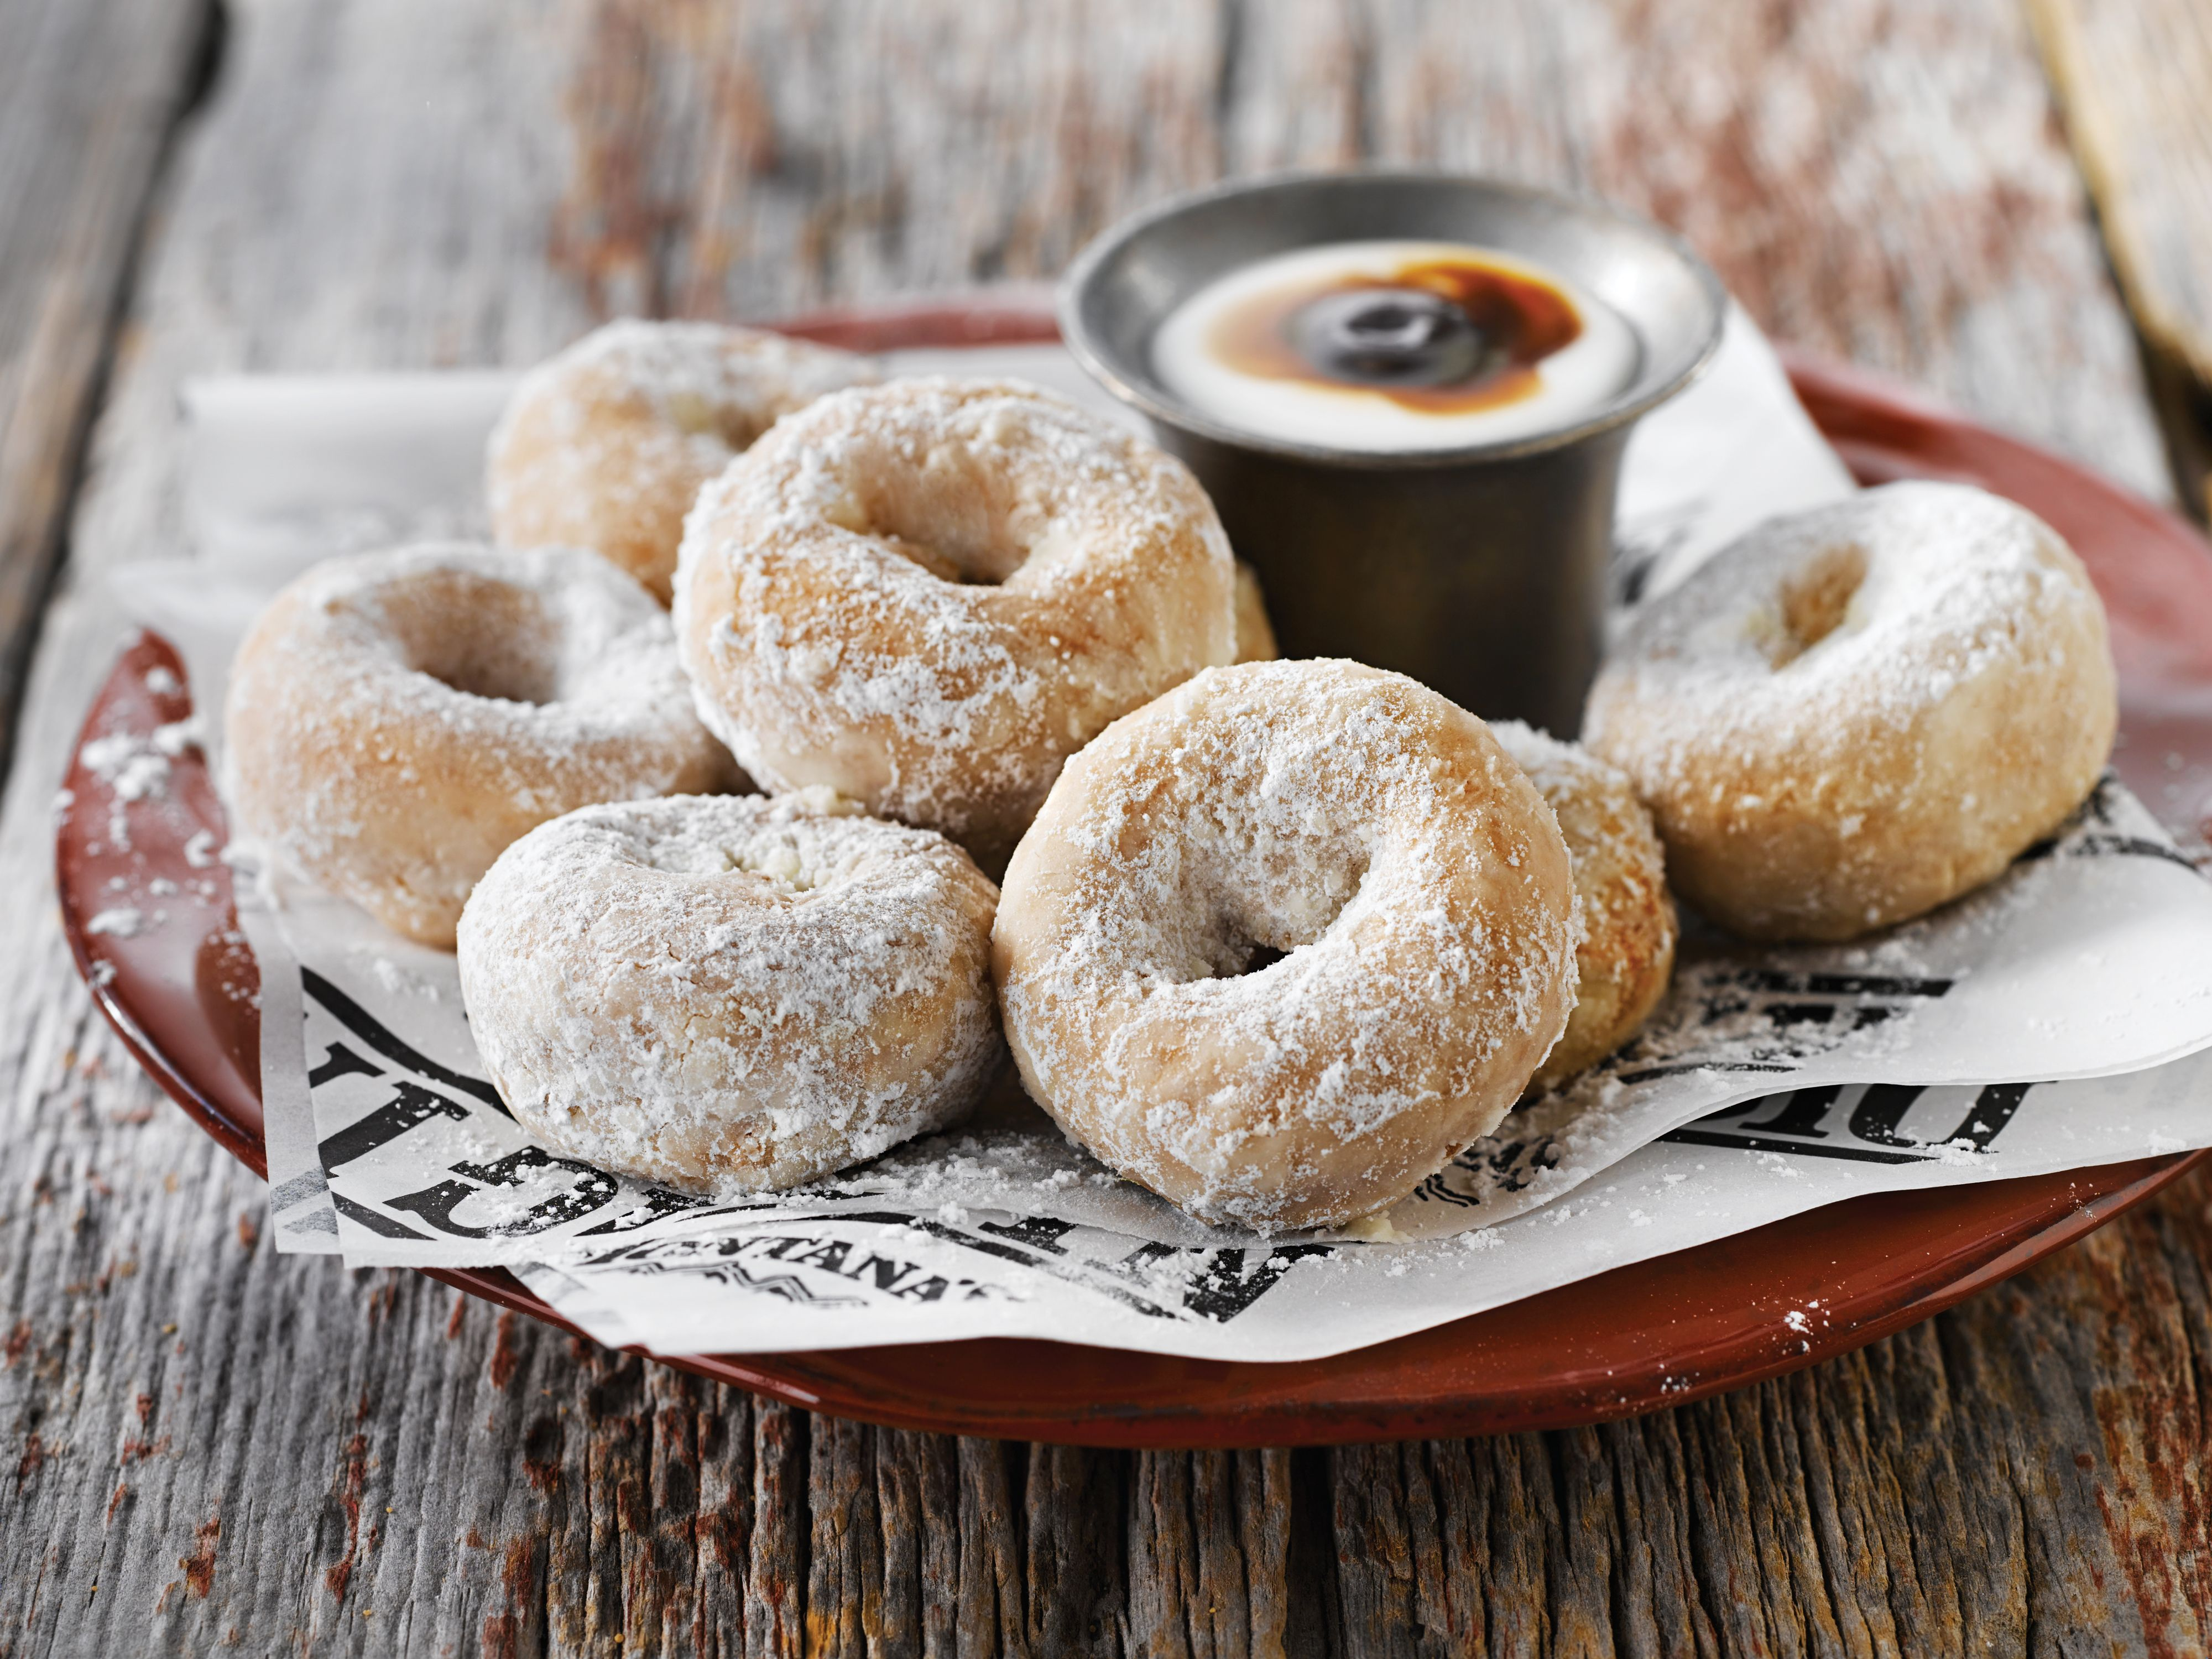 Shake N Share Mini Donuts  - eight warm mini donuts made fresh to order and tossed in powered sugar served with white chocolate cinnamon sauce